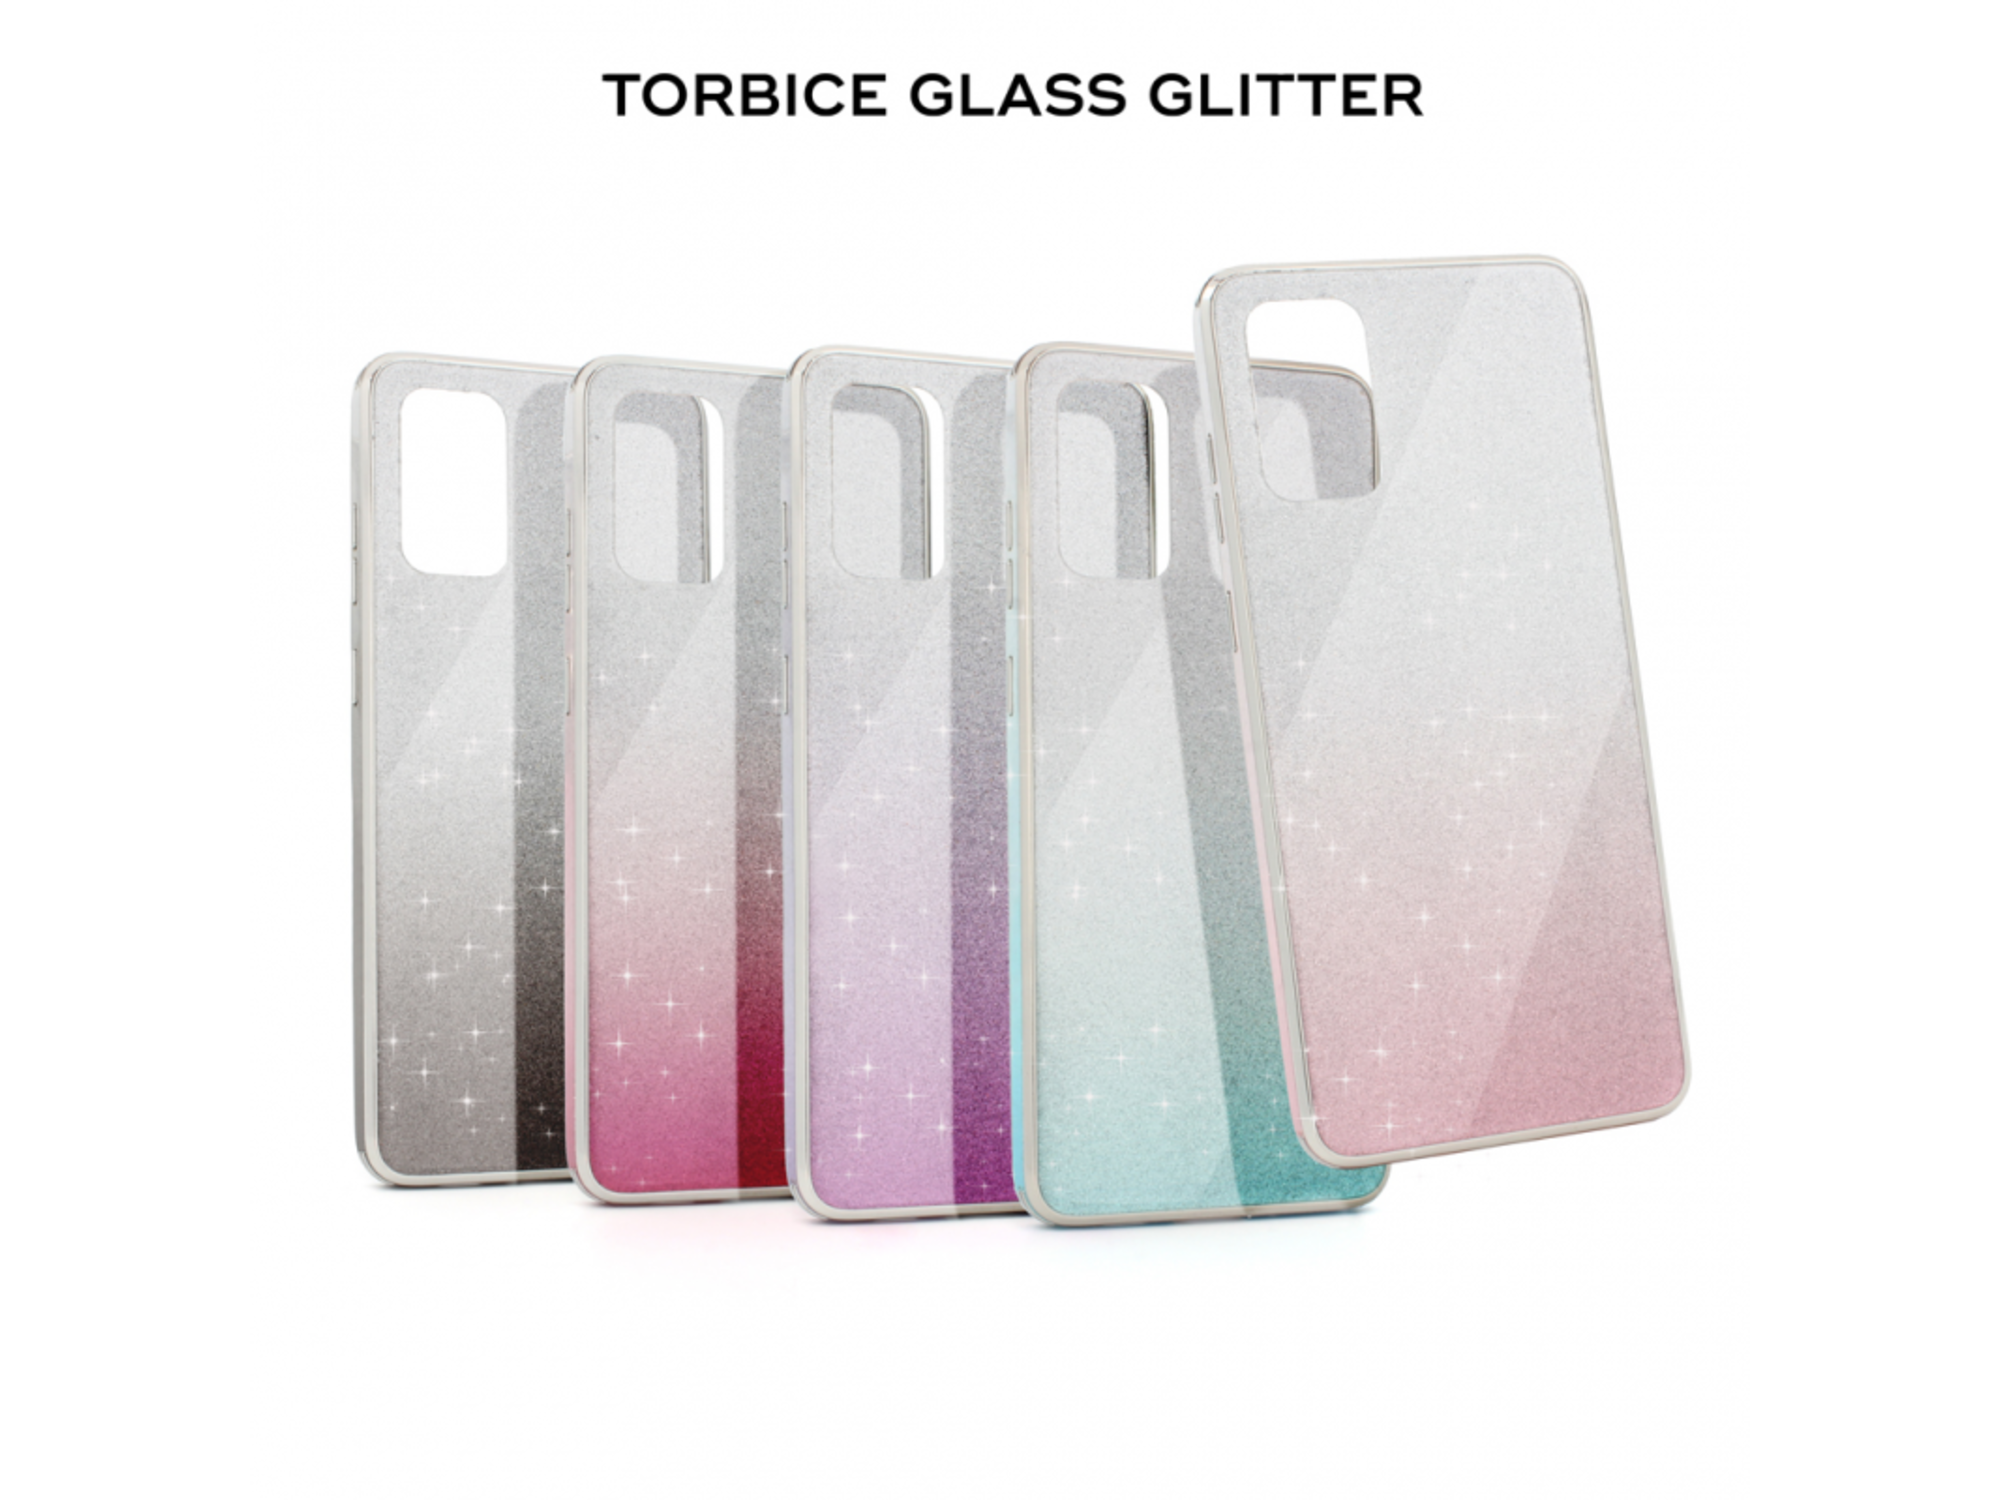 Torbica Glass Glitter za iPhone 11 Pro Max 6.5